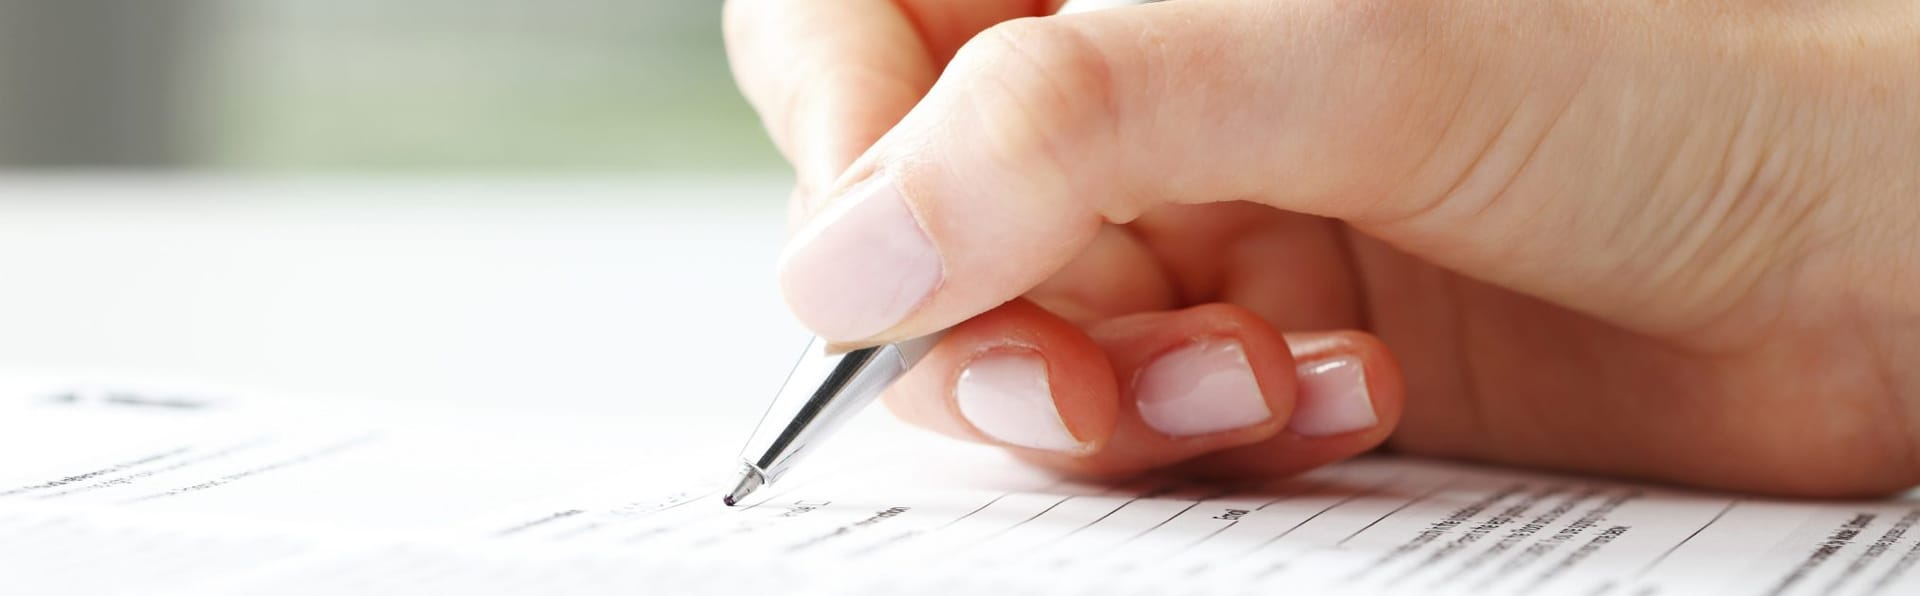 person holding pen to paper